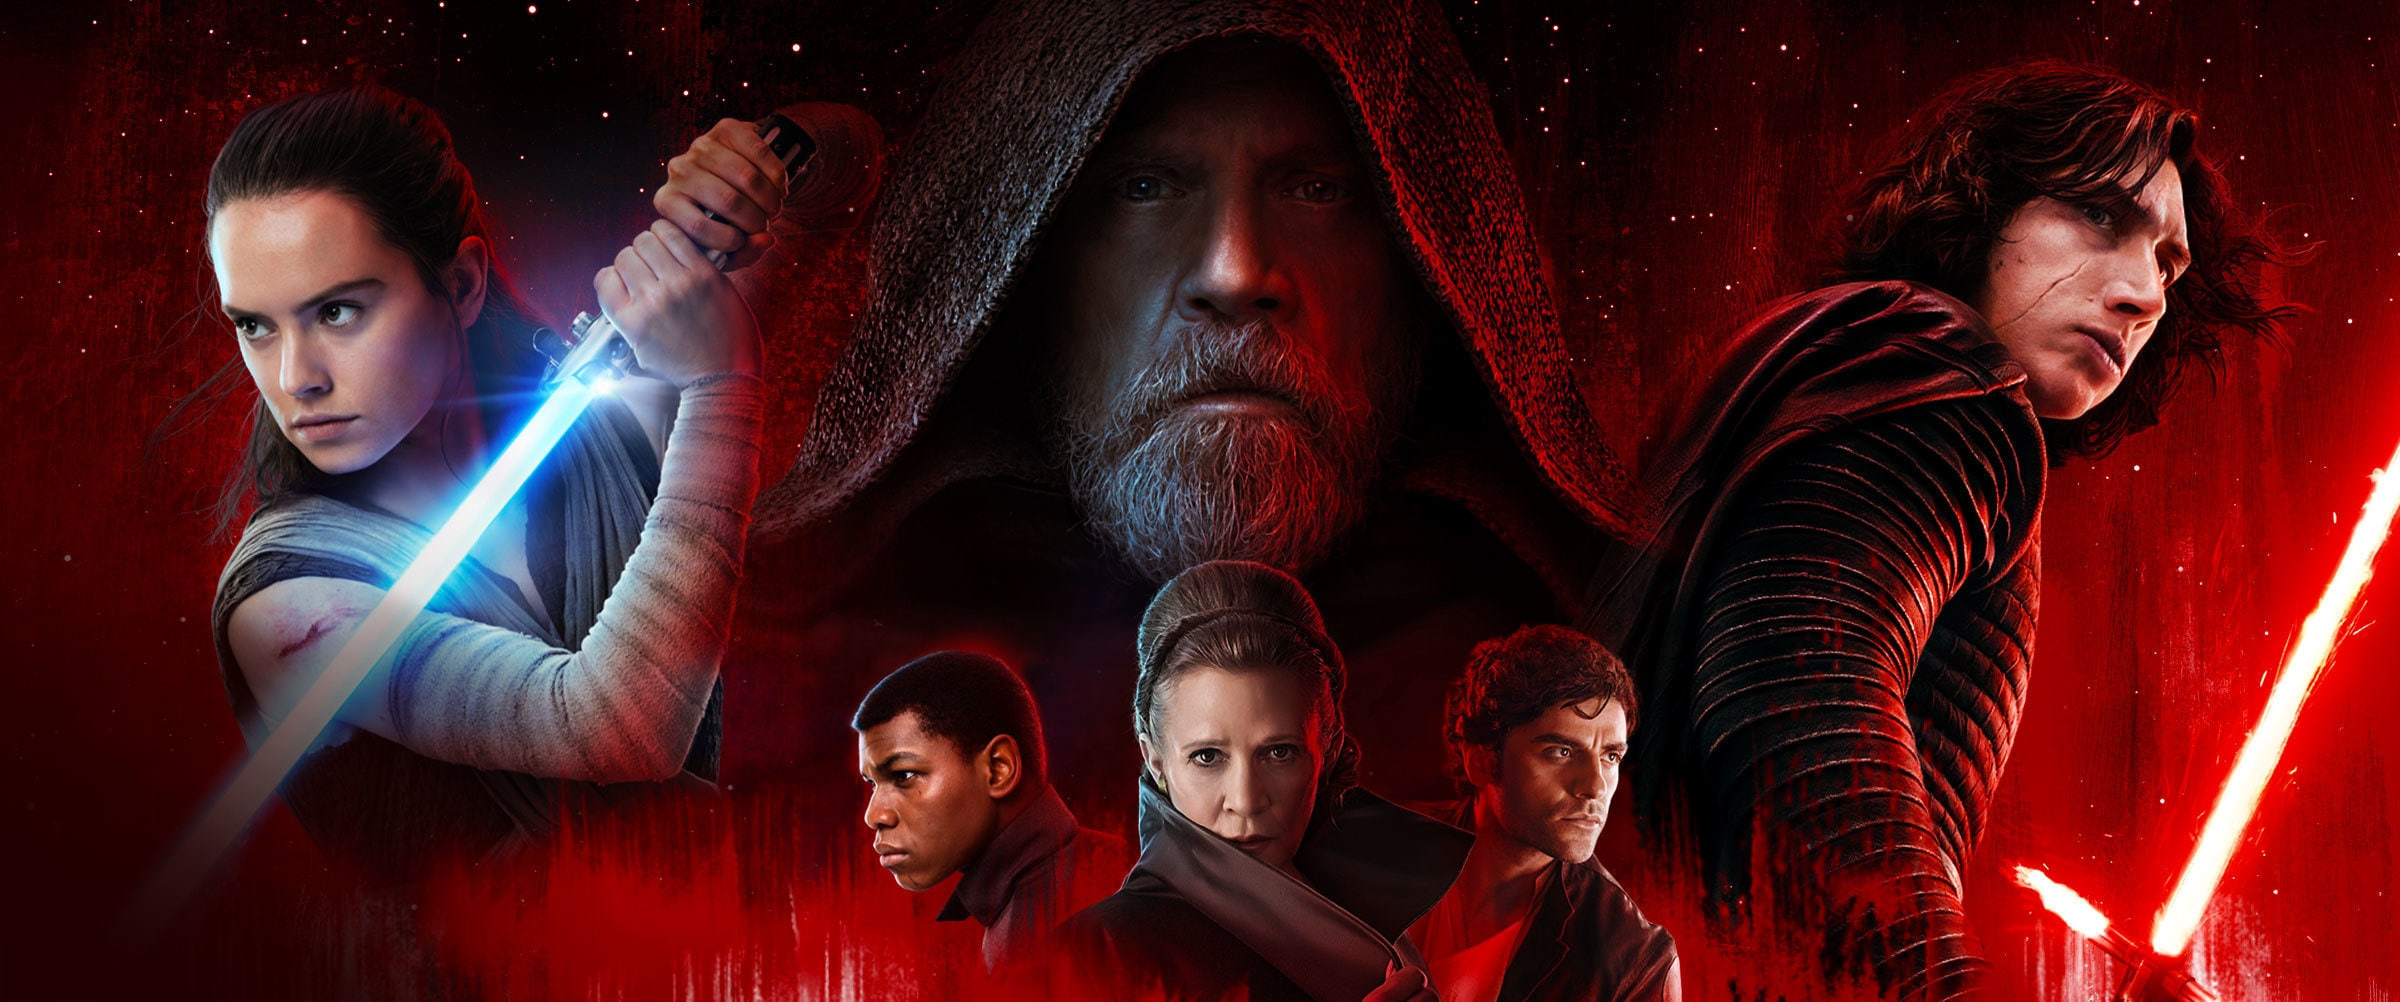 NL - Star Wars The Last Jedi - Flex-Content Hero Object - Video